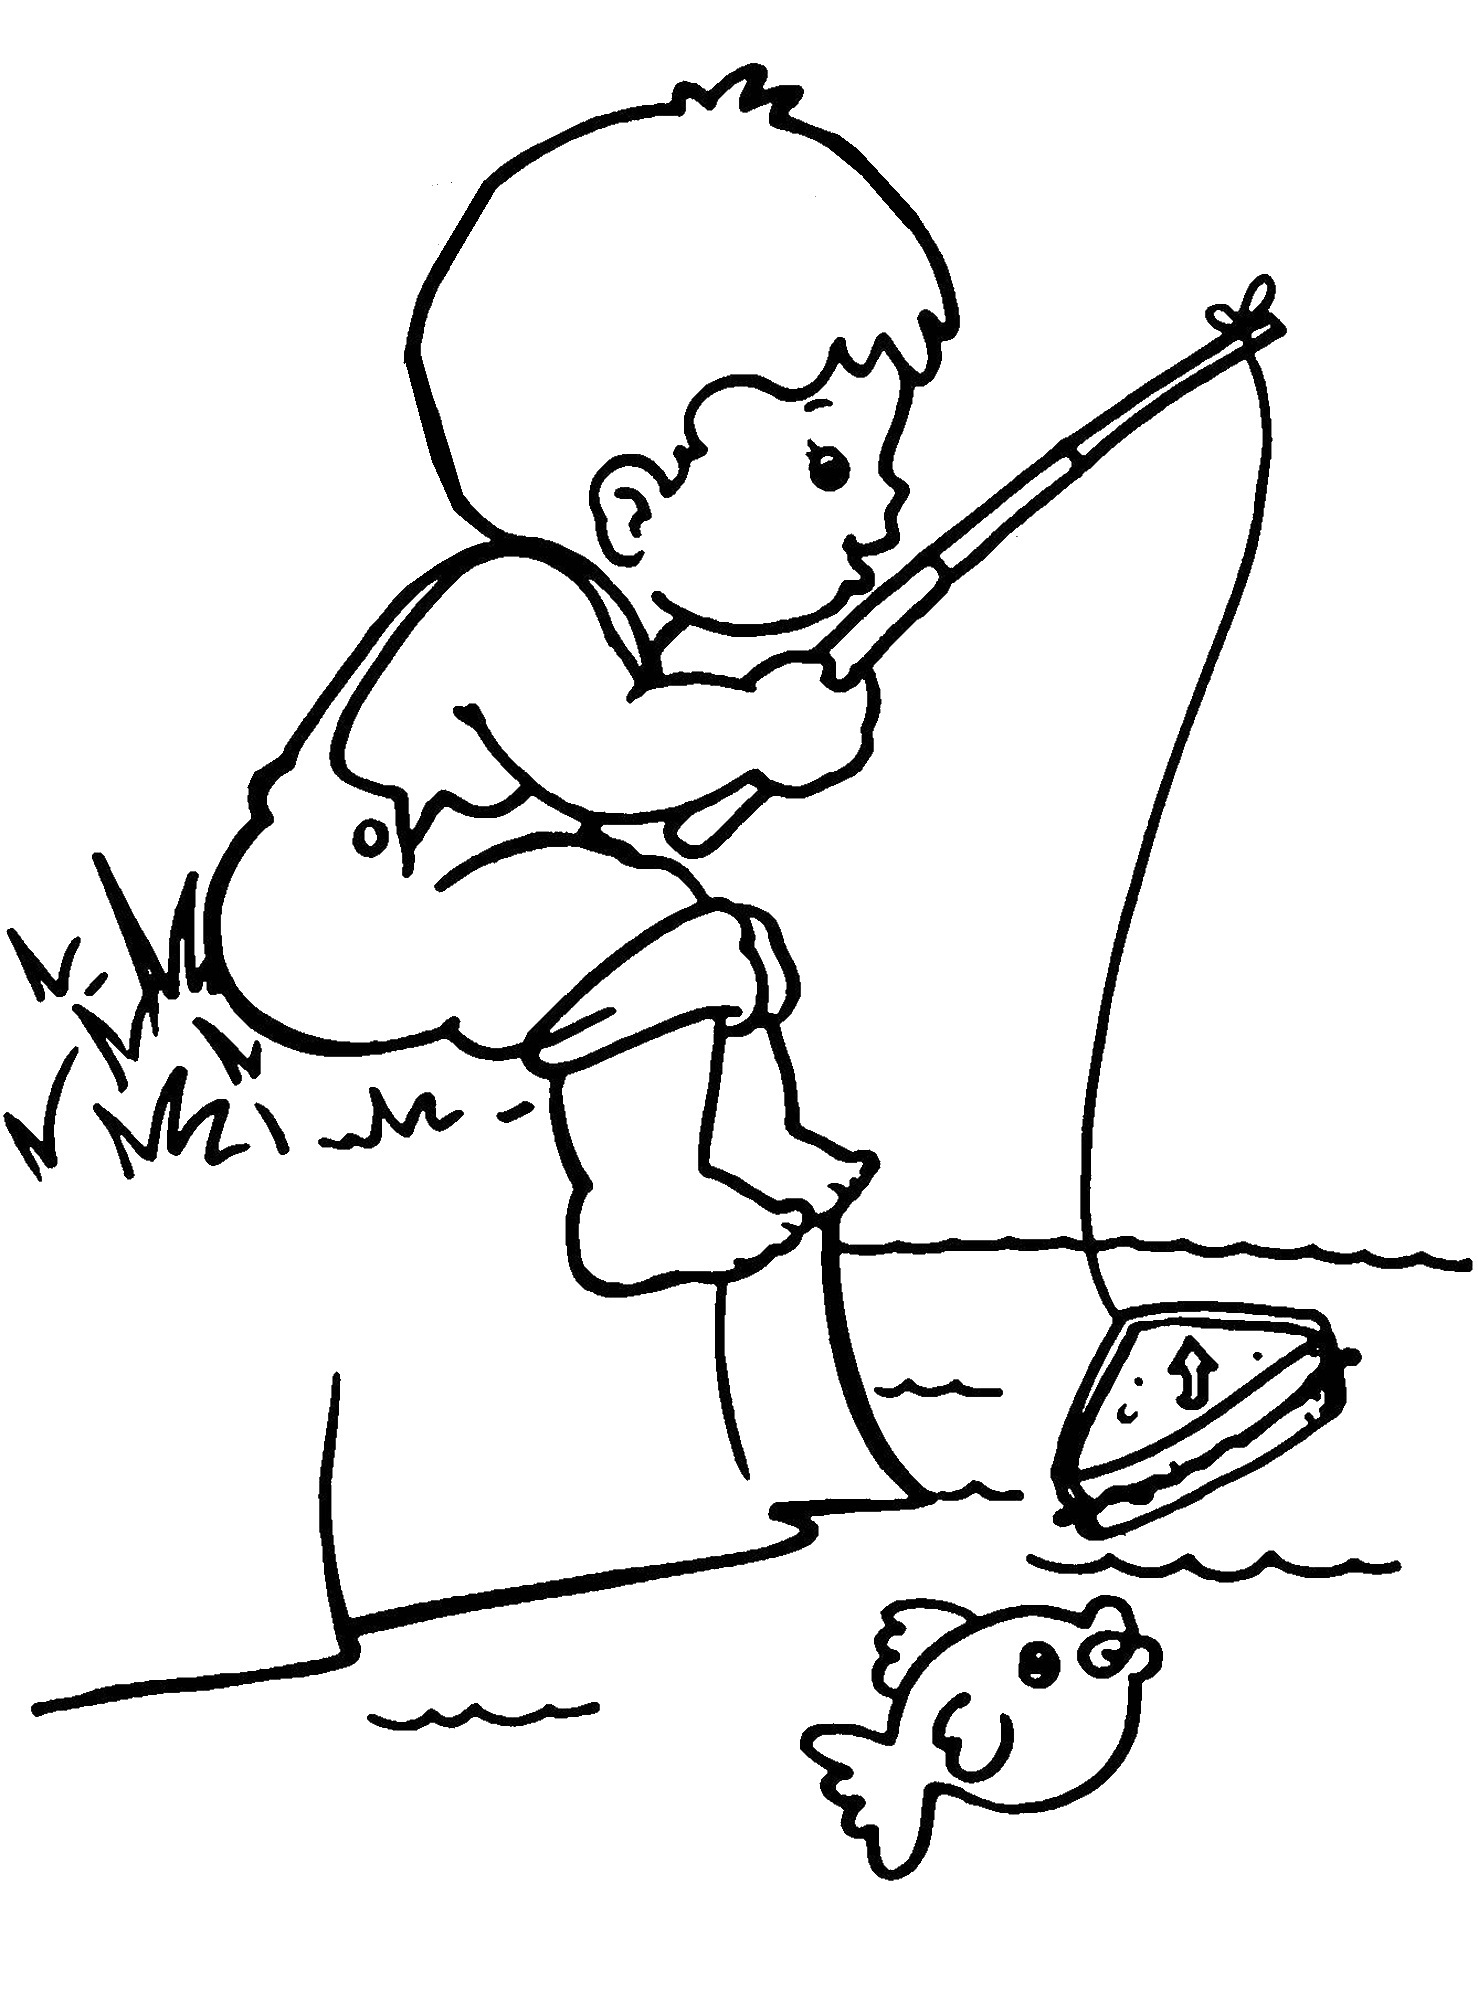 Free printable boy coloring pages for kids for Fun coloring pages for kids